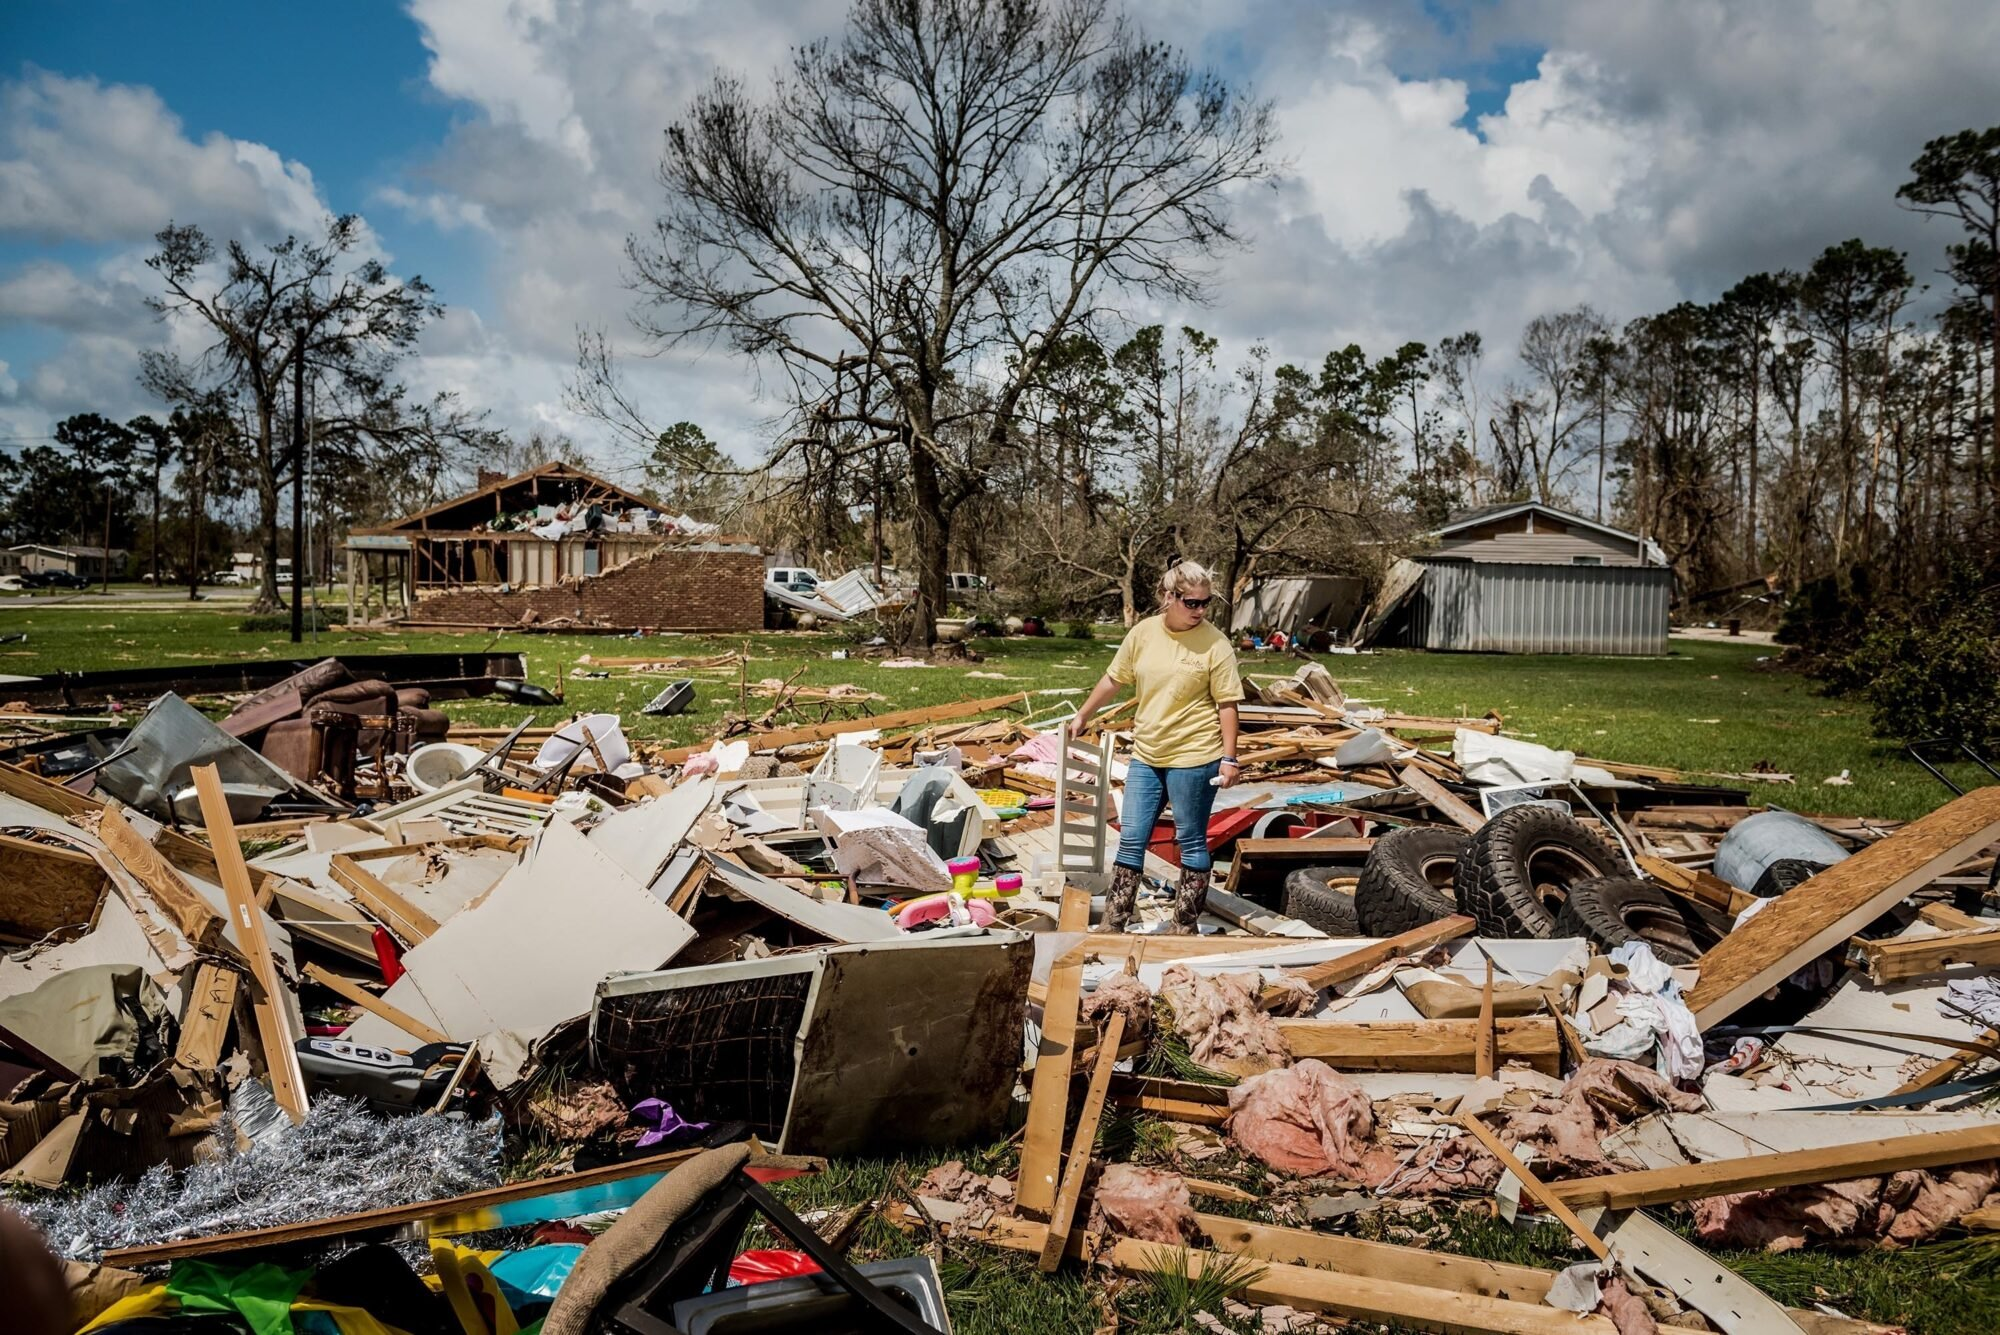 Cassidy Plaisance surveying what was left of her friend's home in Lake Charles, Louisiana, after Hurricane Laura.